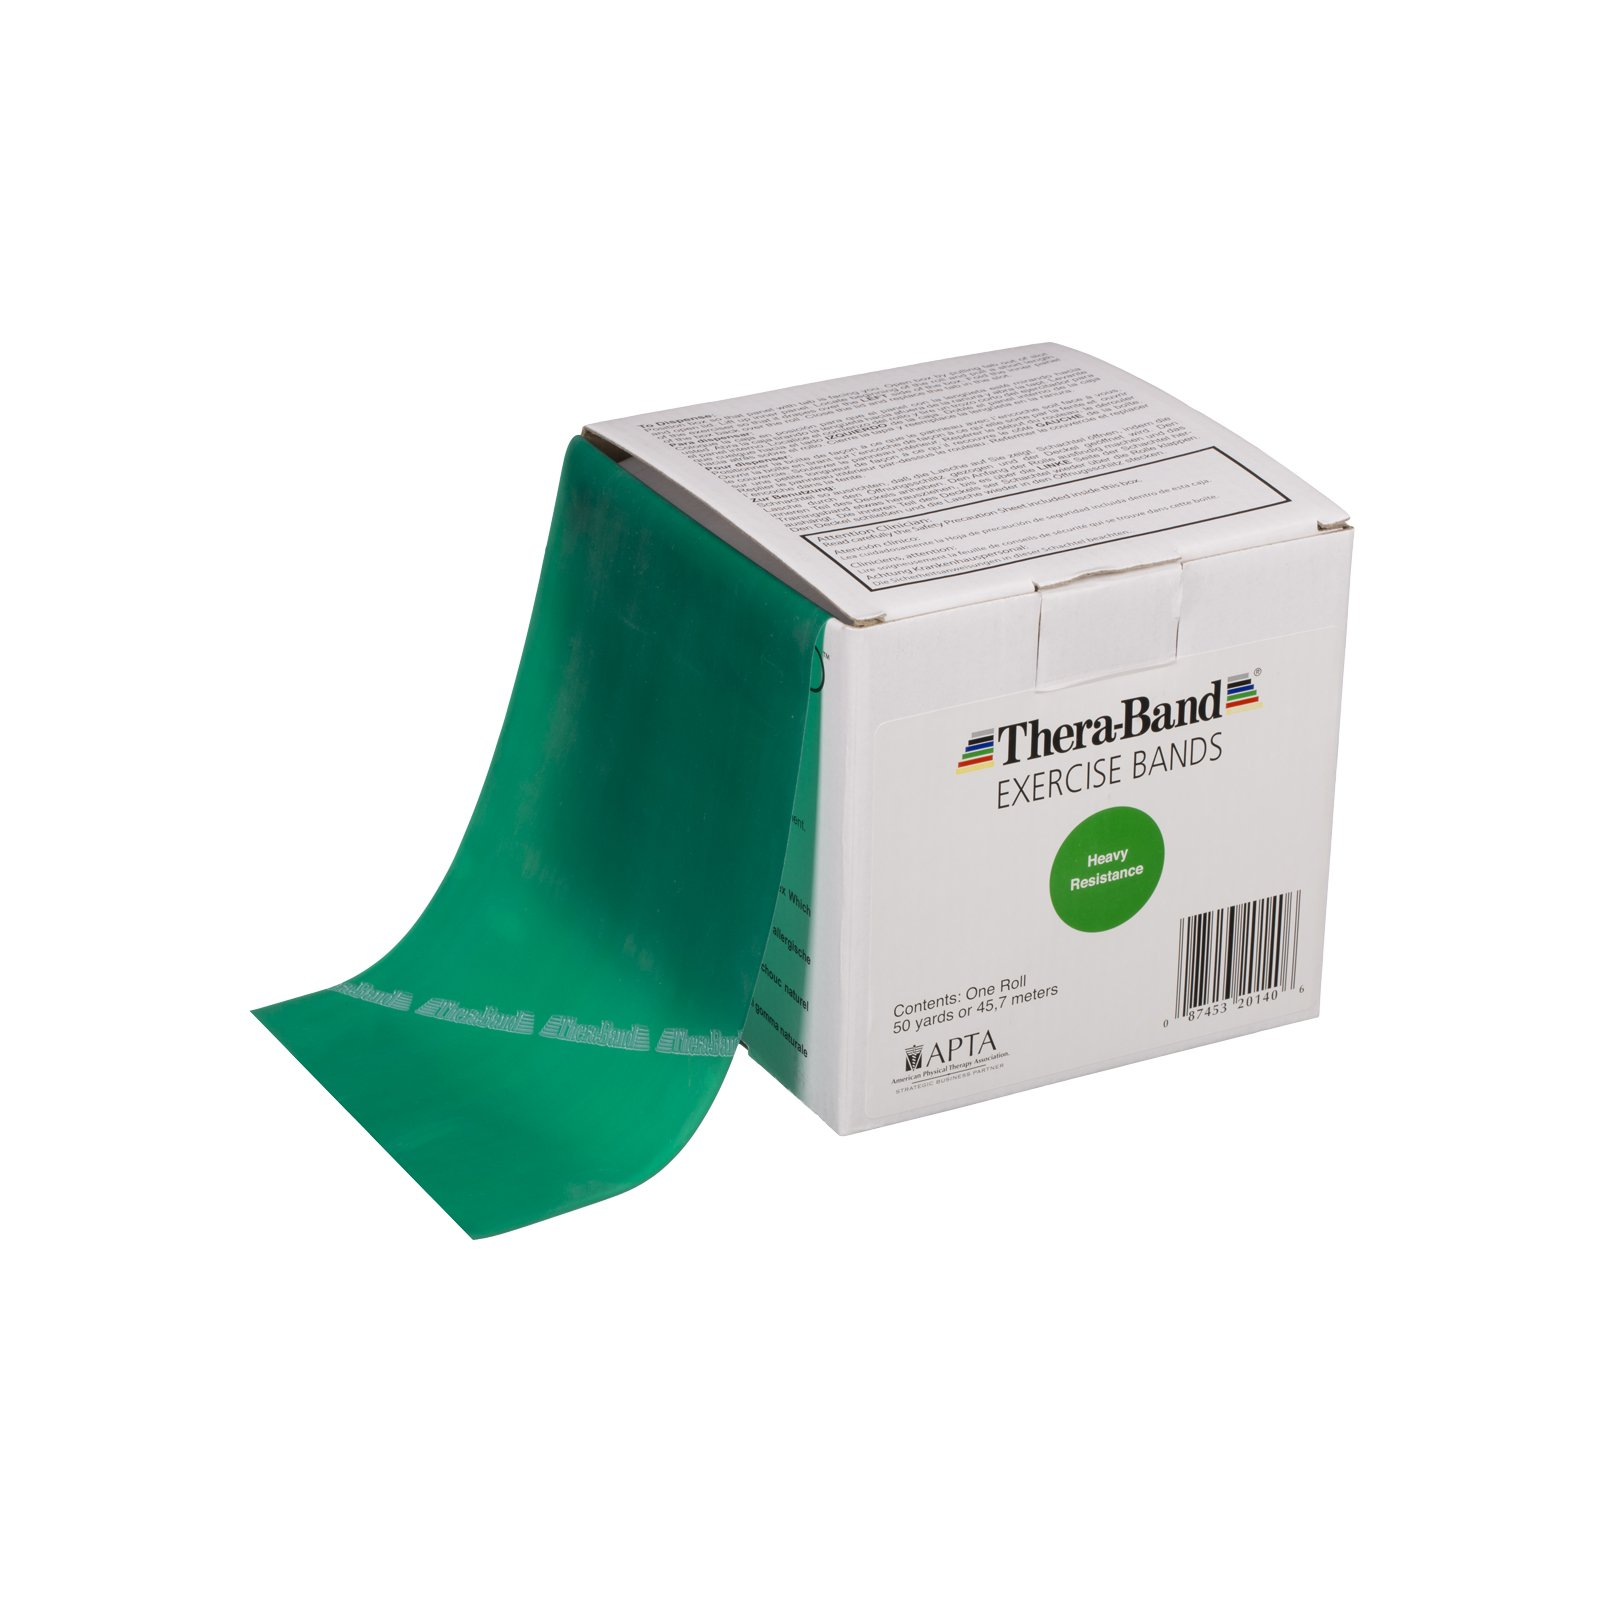 TheraBand Resistance Bands, 50 Yard Roll Professional Latex Elastic Band For Upper & Lower Body & Core Exercise, Physical Therapy, Pilates, At-Home Workout, & Rehab, Green, Heavy, Intermediate Level 1